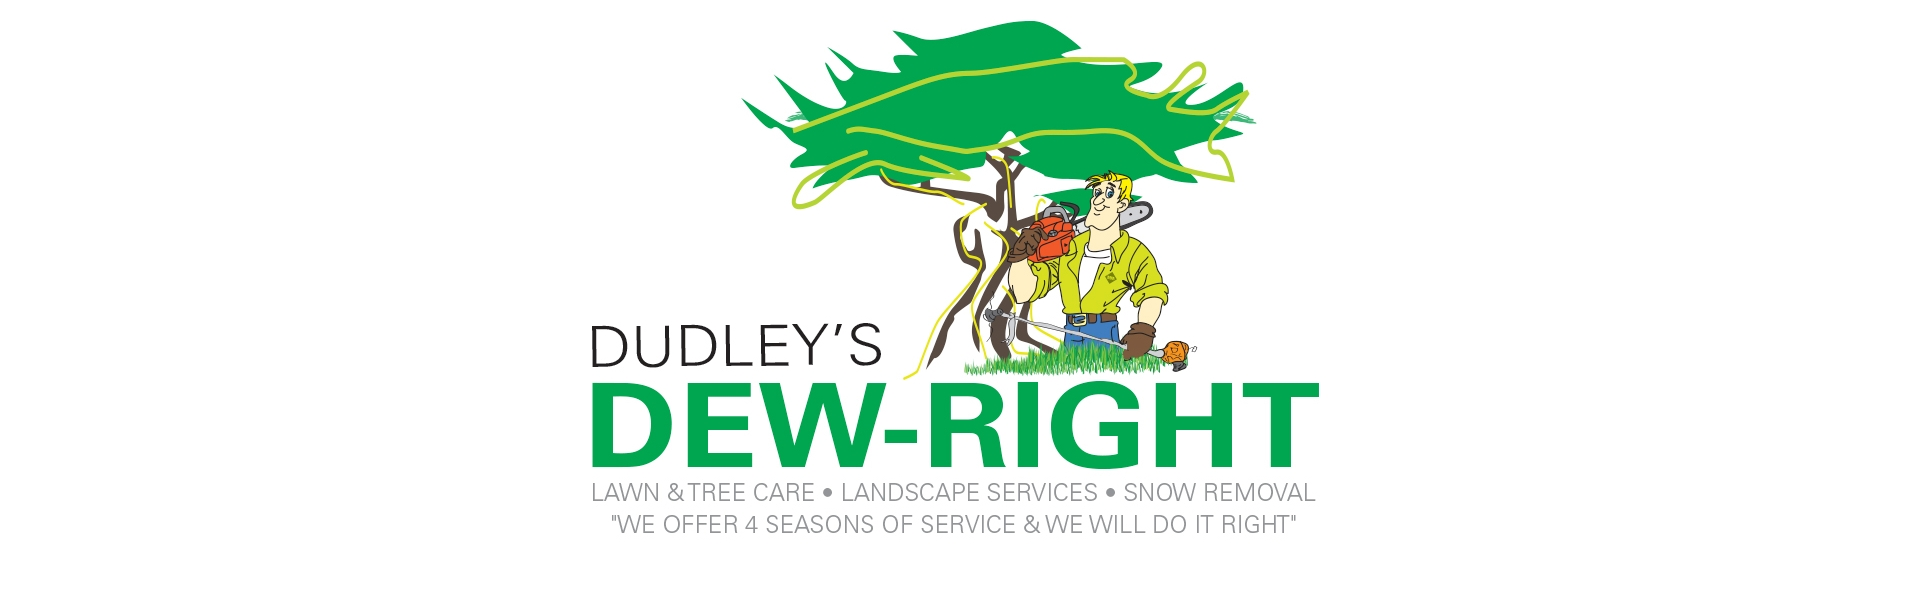 Dudley's Dew Right Logo Design